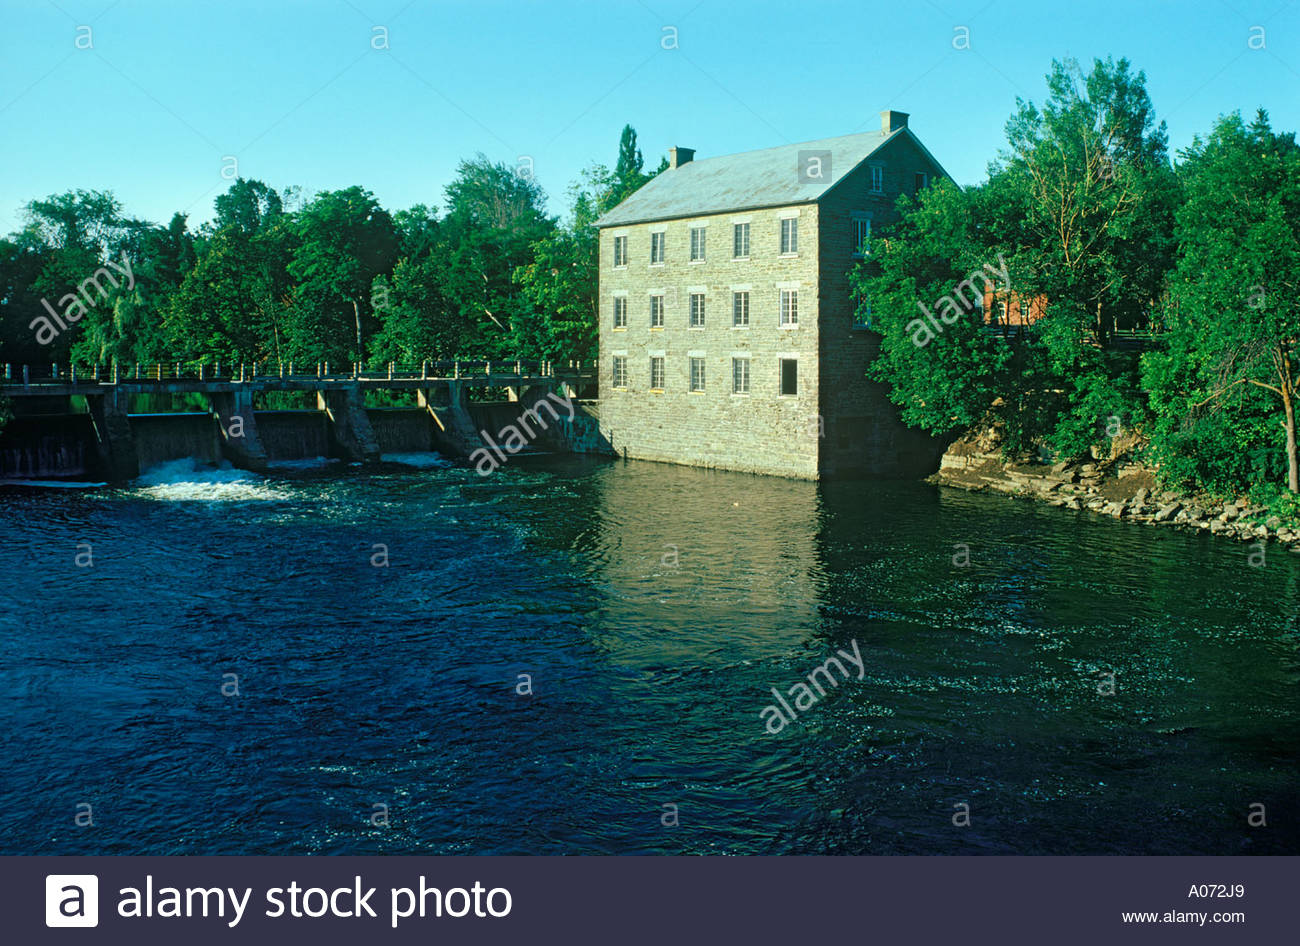 Watson's Mill a gristmill museum and dam on the Rideau River at Manotick Ontario Canada - Stock Image